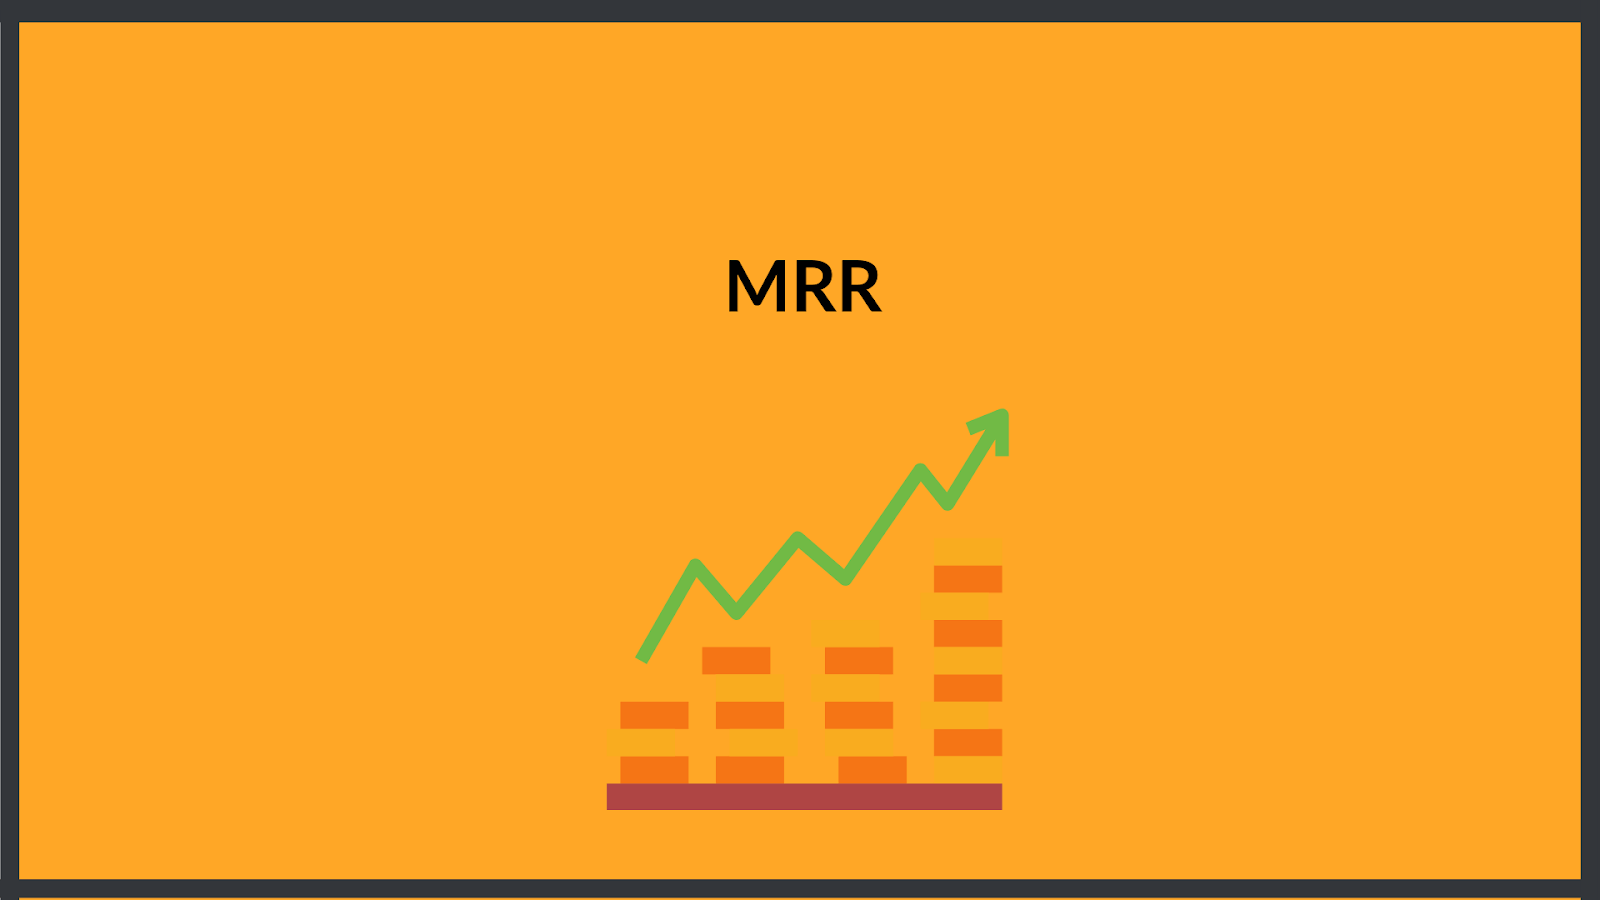 Monthly Recurring Revenue = MRR